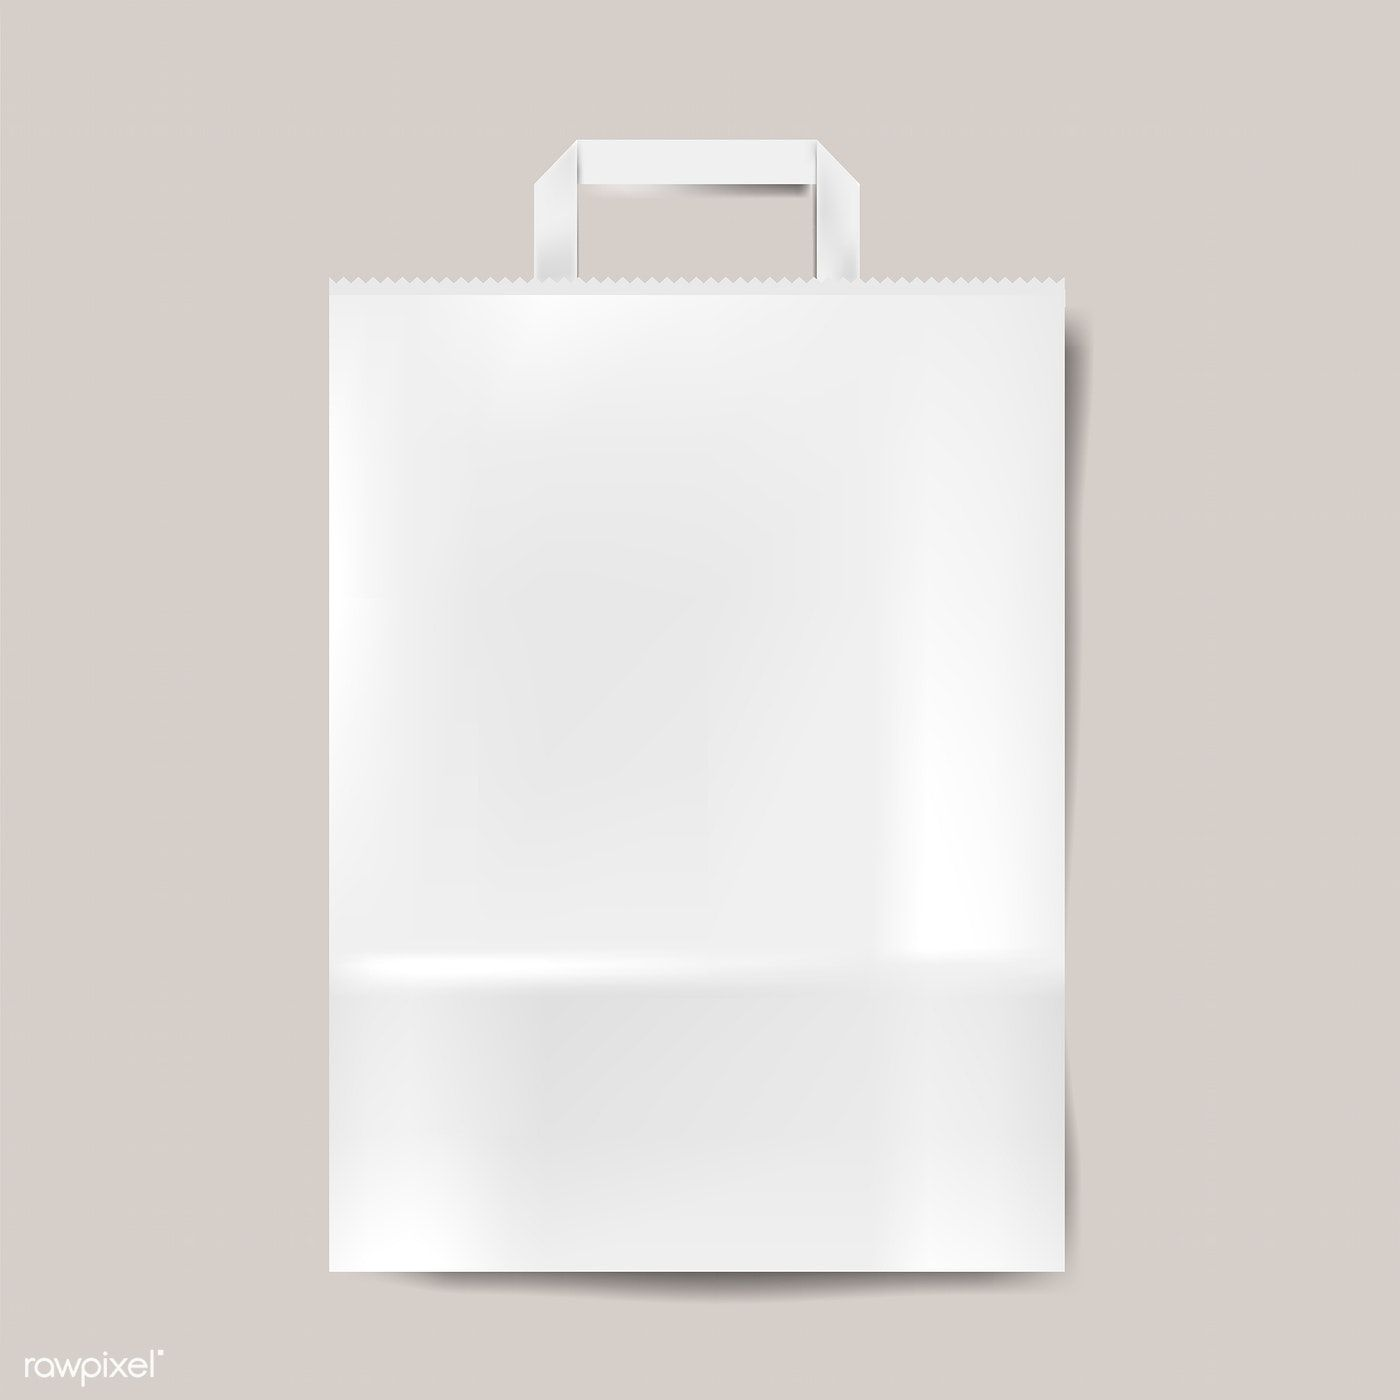 Download Paper Bag Mockup Isolated Vector Free Image By Rawpixel Com Aew Bag Mockup Graphic Design Mockup Paper Bag